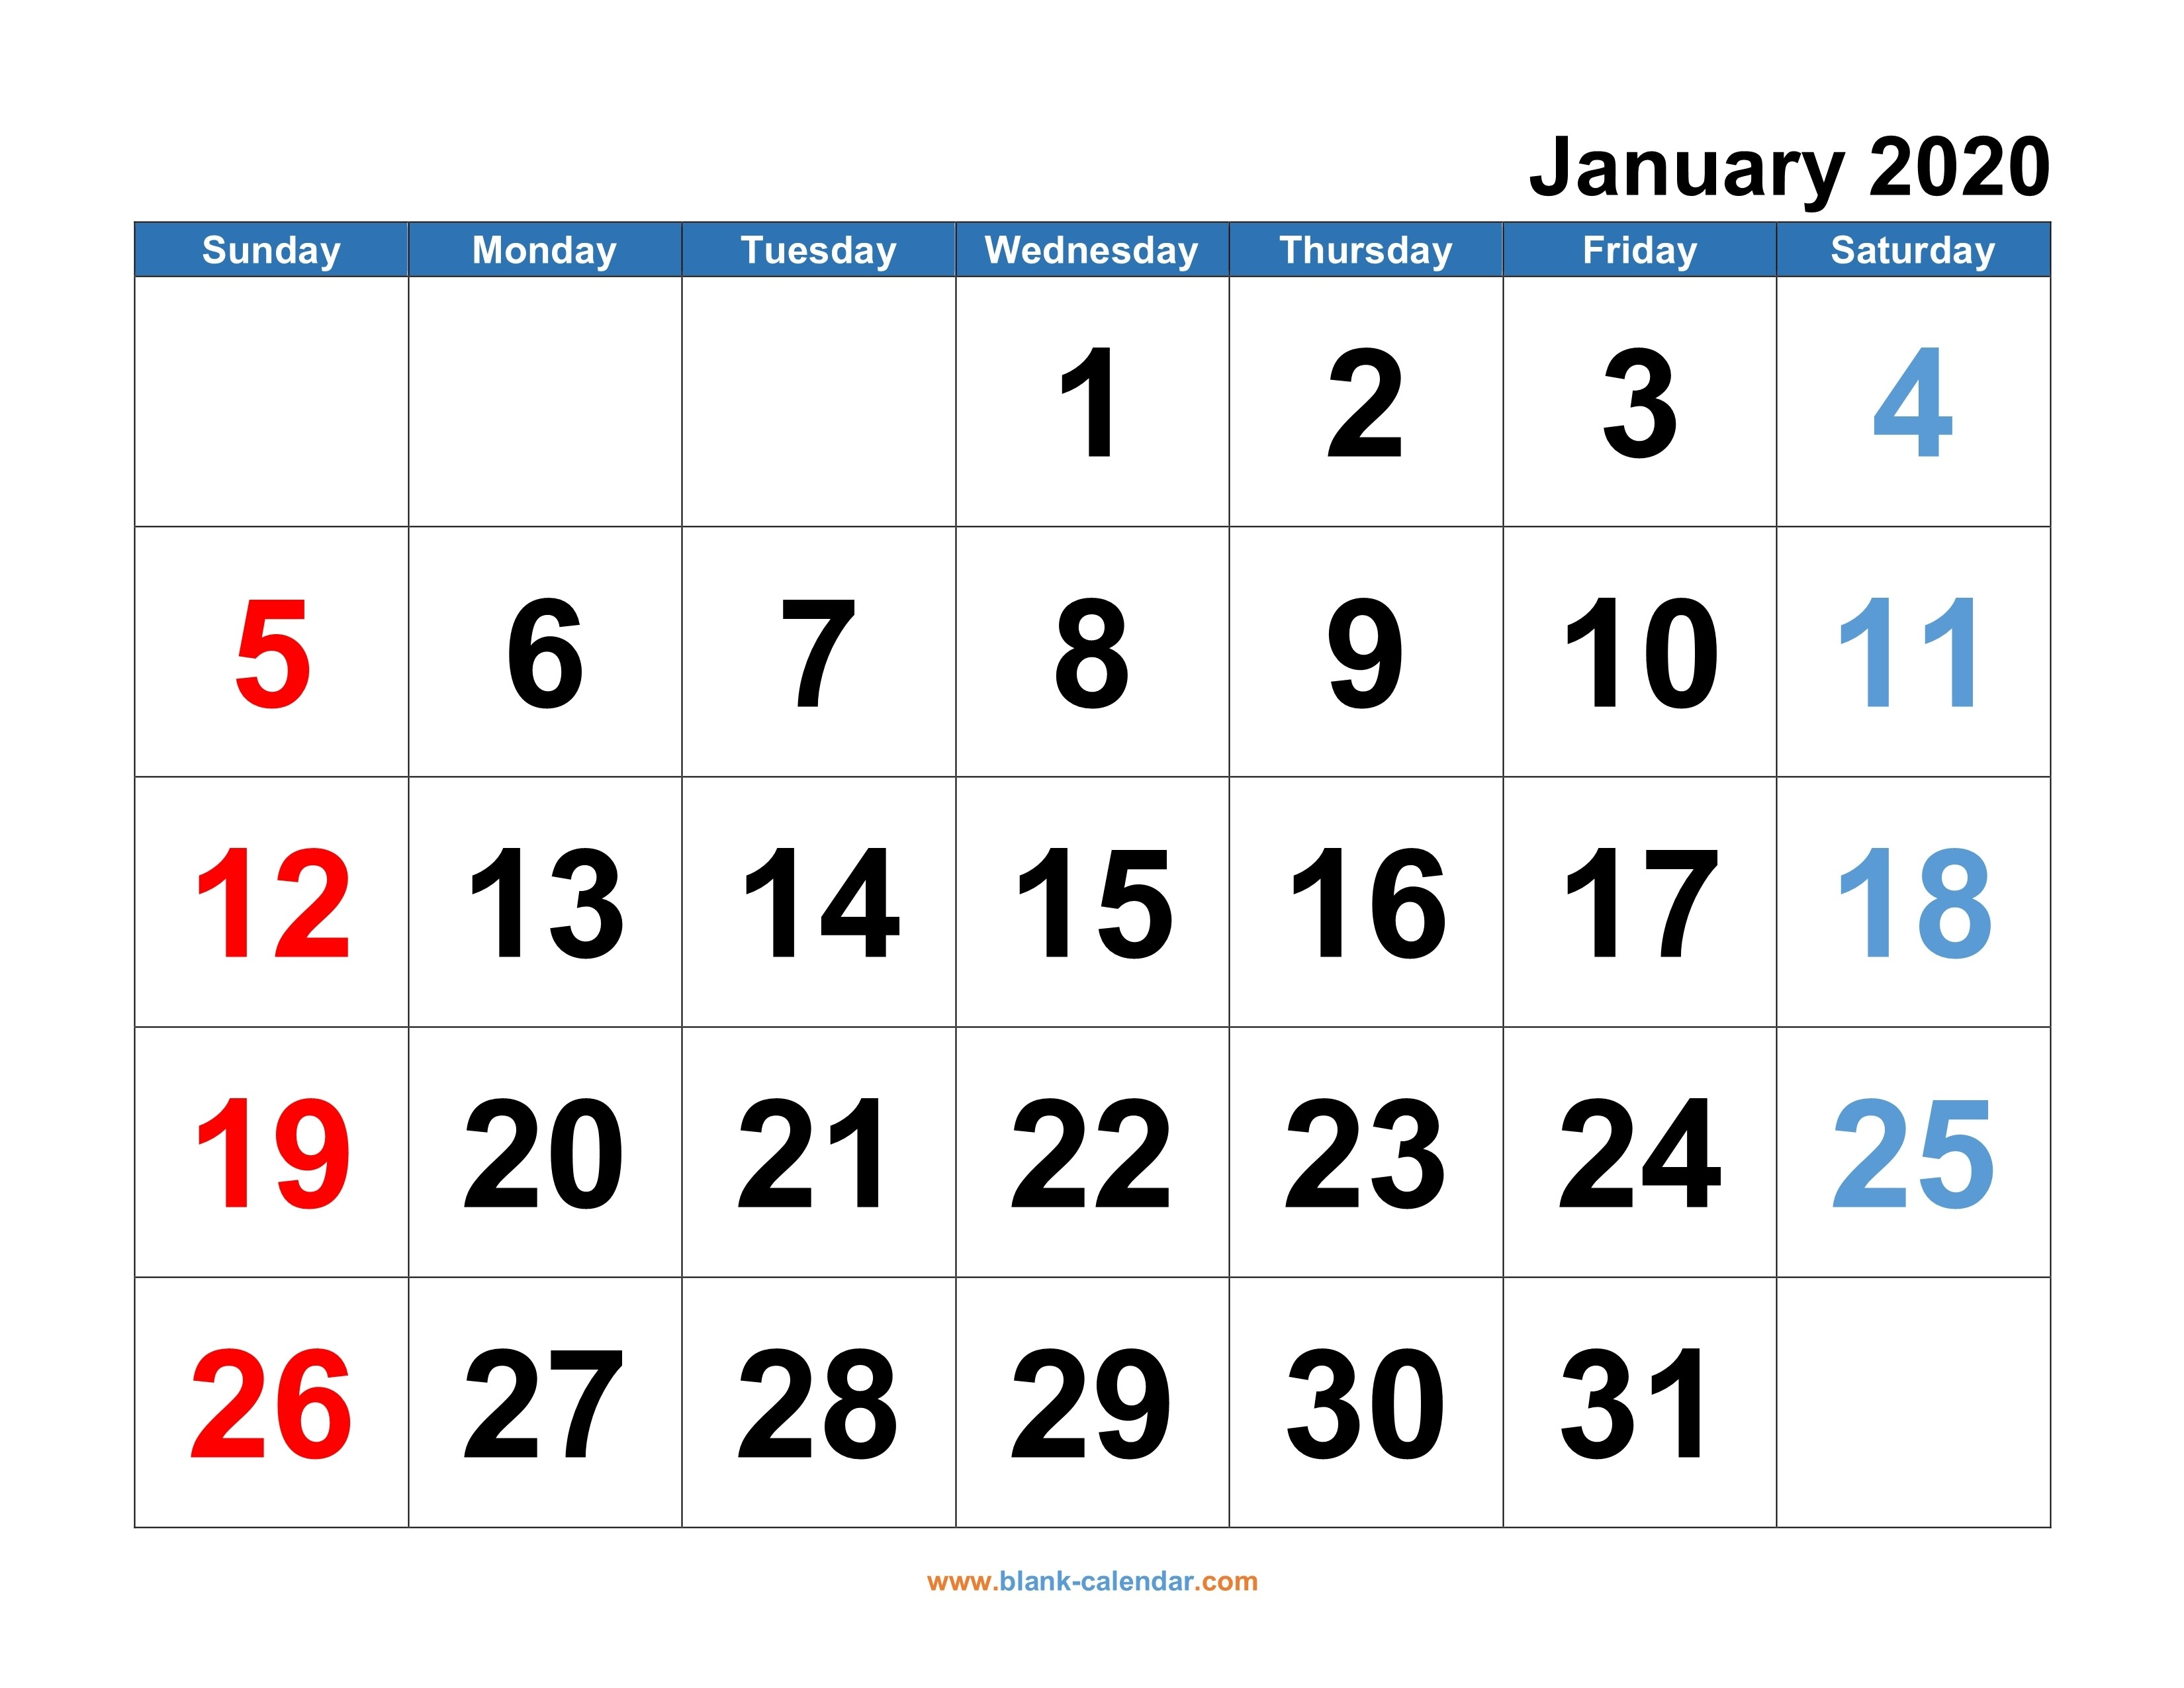 Monthly Calendar 2020 | Free Download, Editable And Printable-12 Month Blank Calendar 2020 Printable